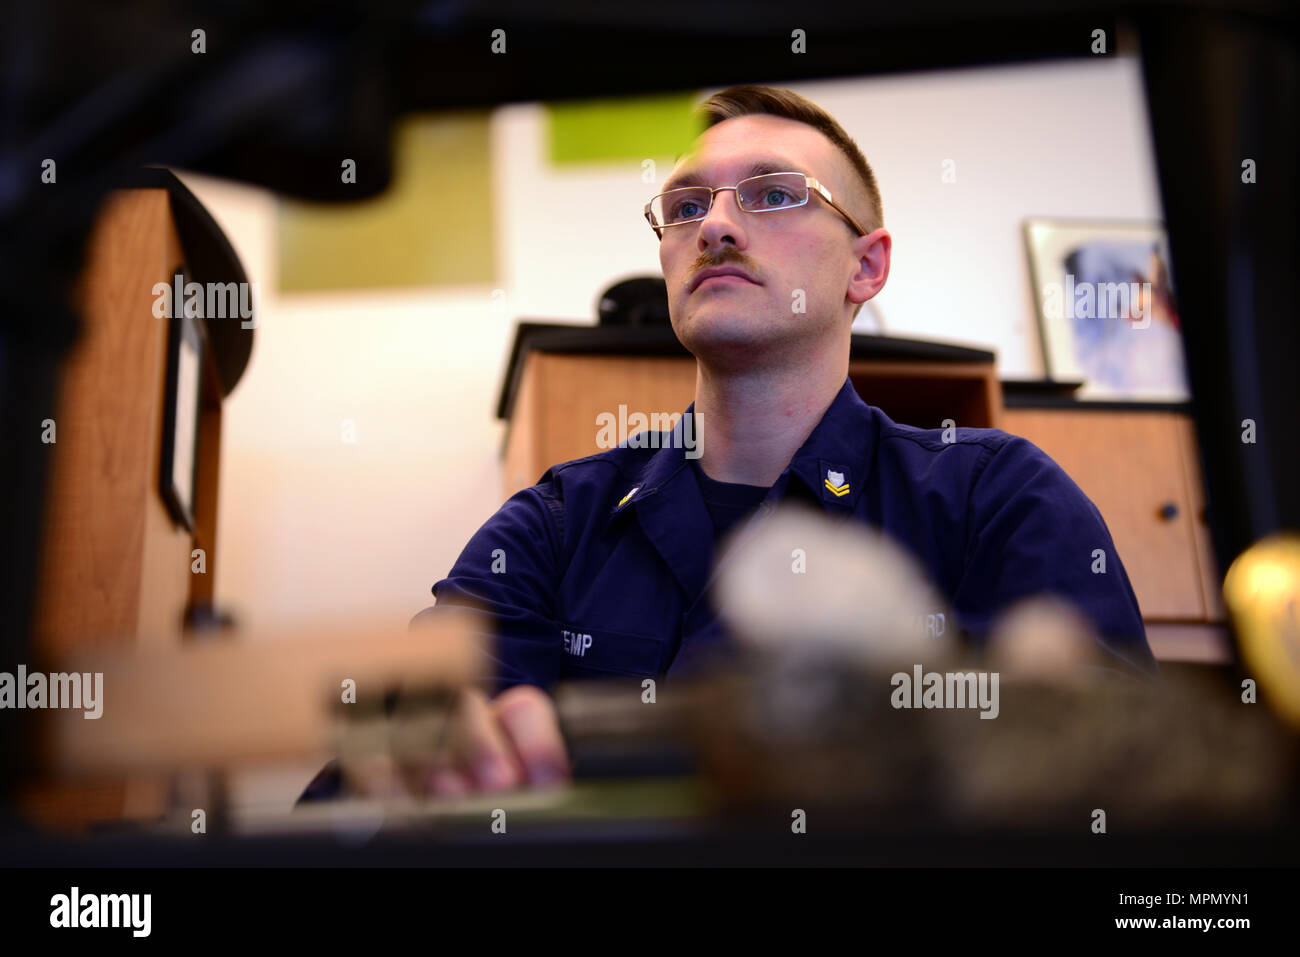 Coast Guard Petty Officer 2nd Class Michael Cody Kemp, a storekeeper stationed with the 13th District, works at his computer, Feb. 16, 2017. At work, Kemp processes procurement requests, removes and records property, reconciles accounts and acts as a liaison with Coast Guard Base Seattle personnel for any of their financial needs. U.S. Coast Guard photo by Petty Officer 2nd Class Ali Flockerzi. - Stock Image